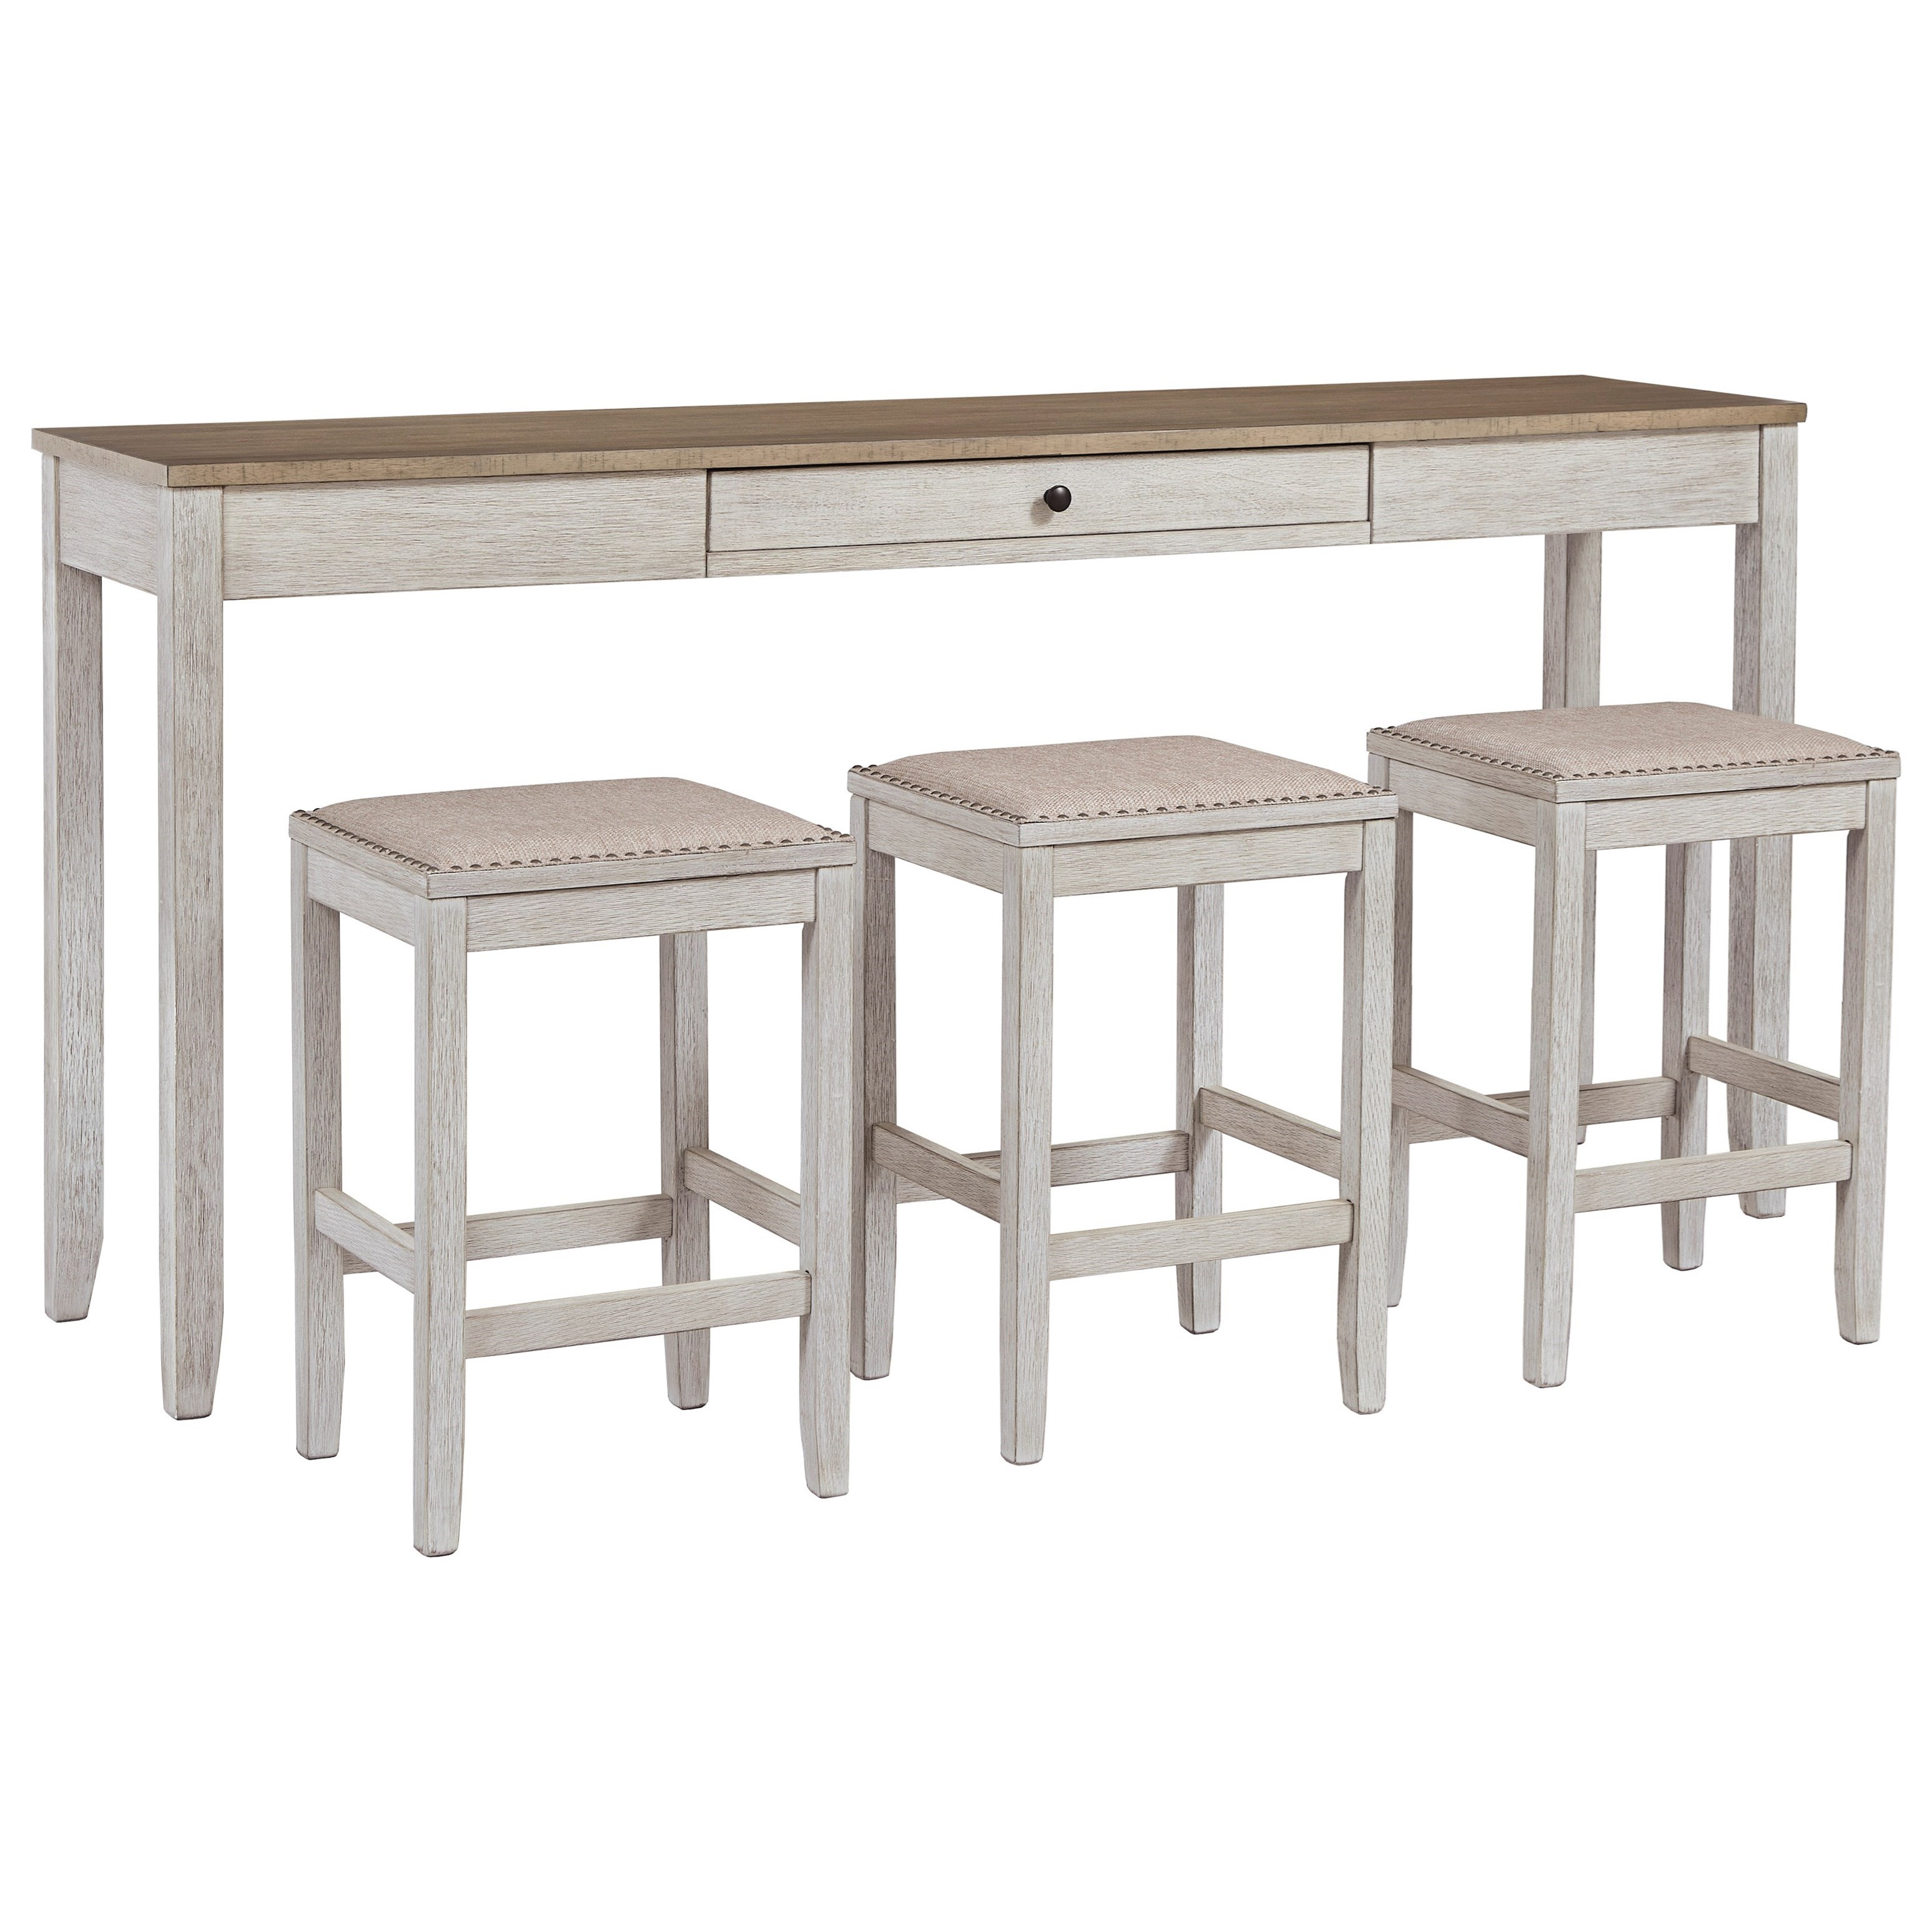 Skempton 4-Piece Rect. Dining Room Counter Table Set by Signature Design by Ashley at Northeast Factory Direct